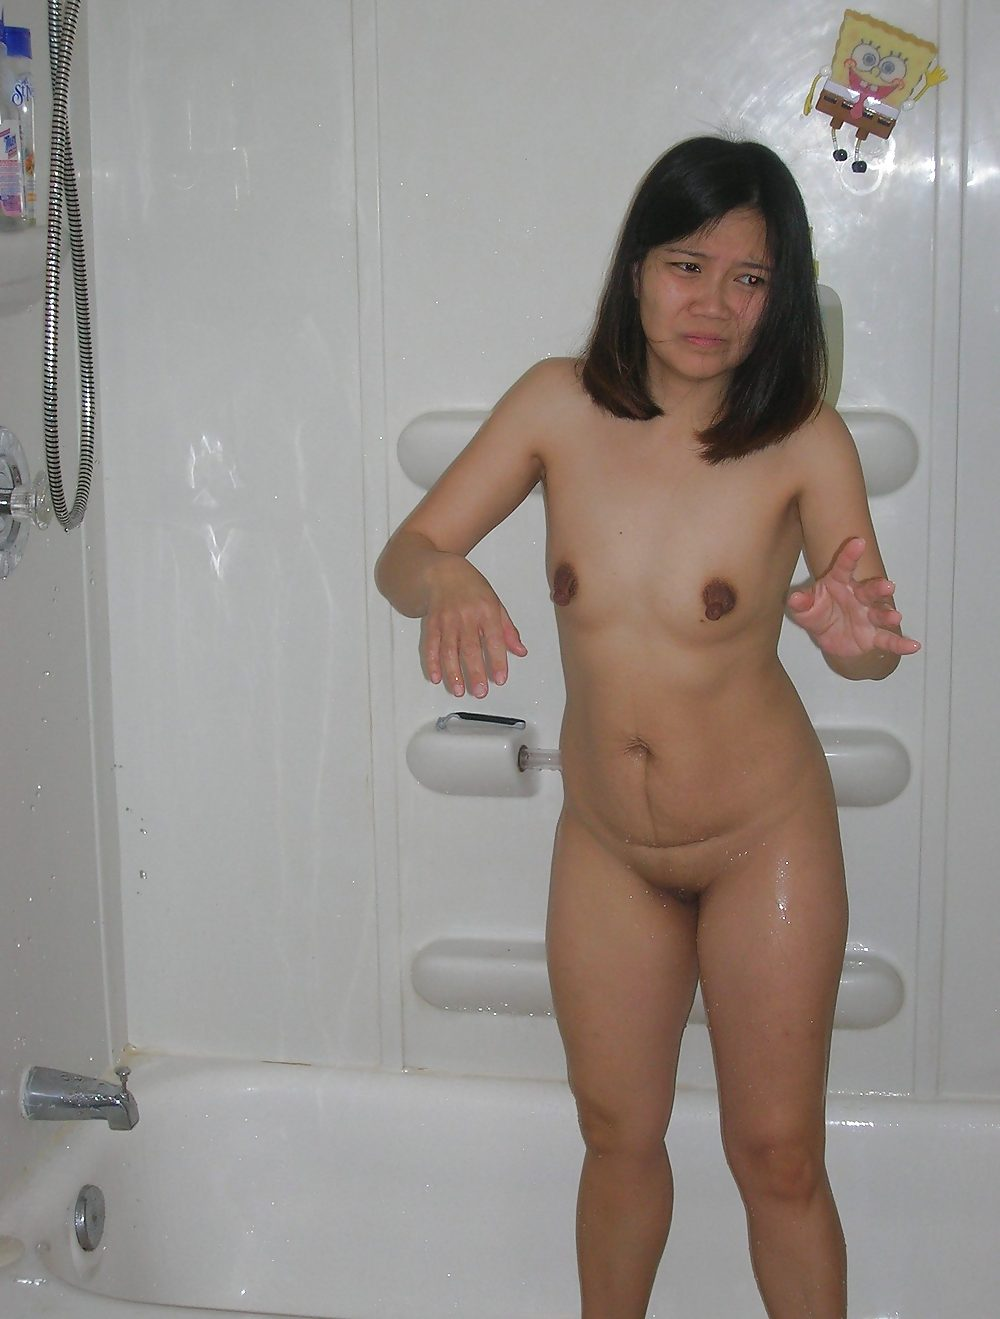 Pissing while having sex